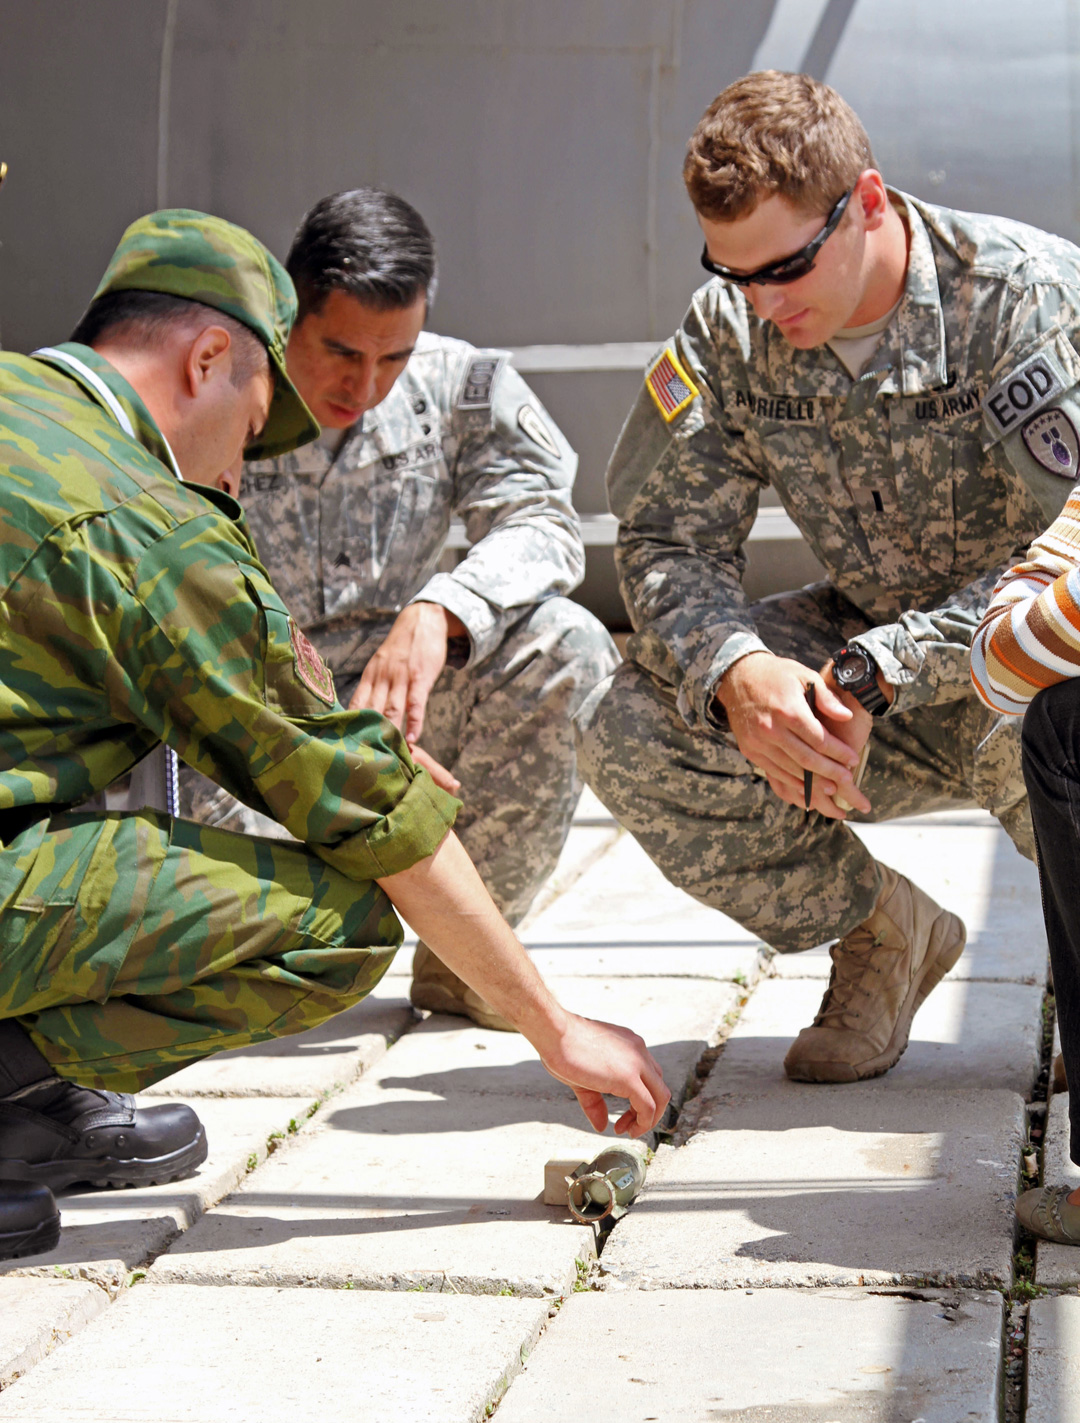 Sgt. Edgar Sanchez (center), an EOD NCO, and 1st Lt. Mitchell Amoriello, an EOD operations officer with the 75th Ordnance Disposal Company, 79th Ordnance Disposal Battalion, 71st Ordnance Group, conduct a practical exercise with a Tajikistan engineer during the International Mine Action Standard EOD level-one course in Tajikistan on June 3, 2014. (Photo by Sgt. Tracy R. Myers)